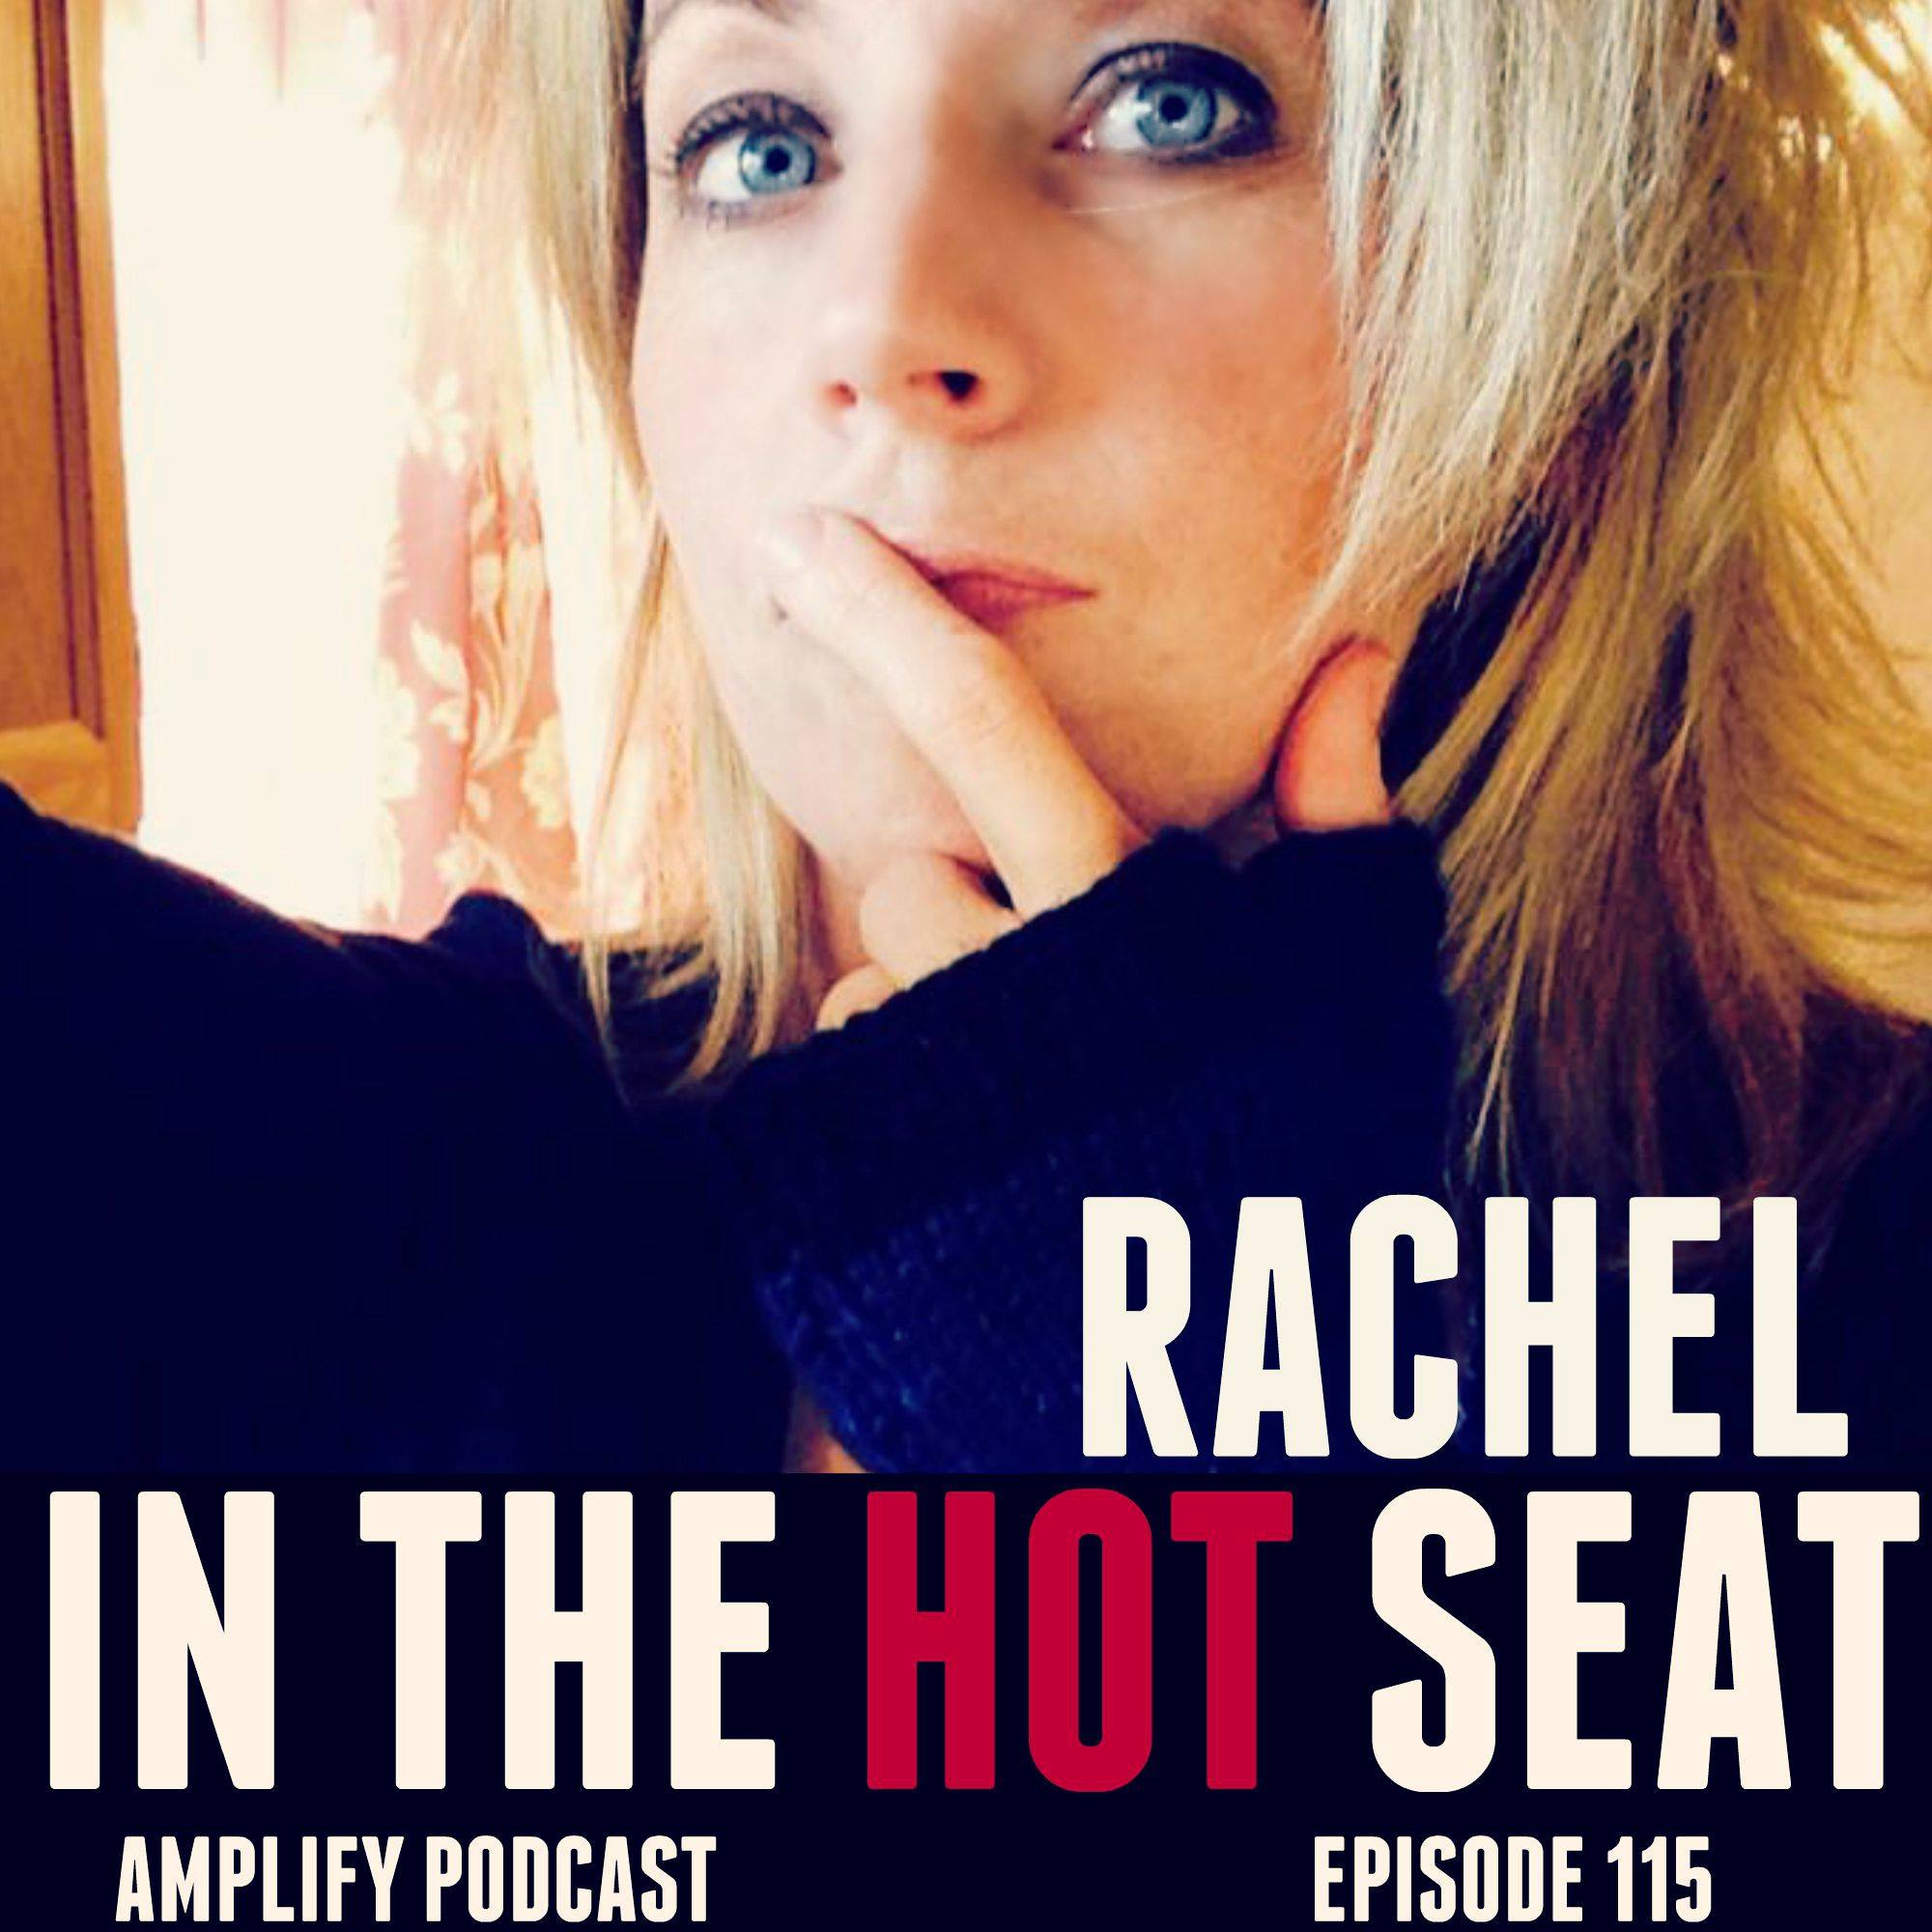 Rachel on the Hot Seat